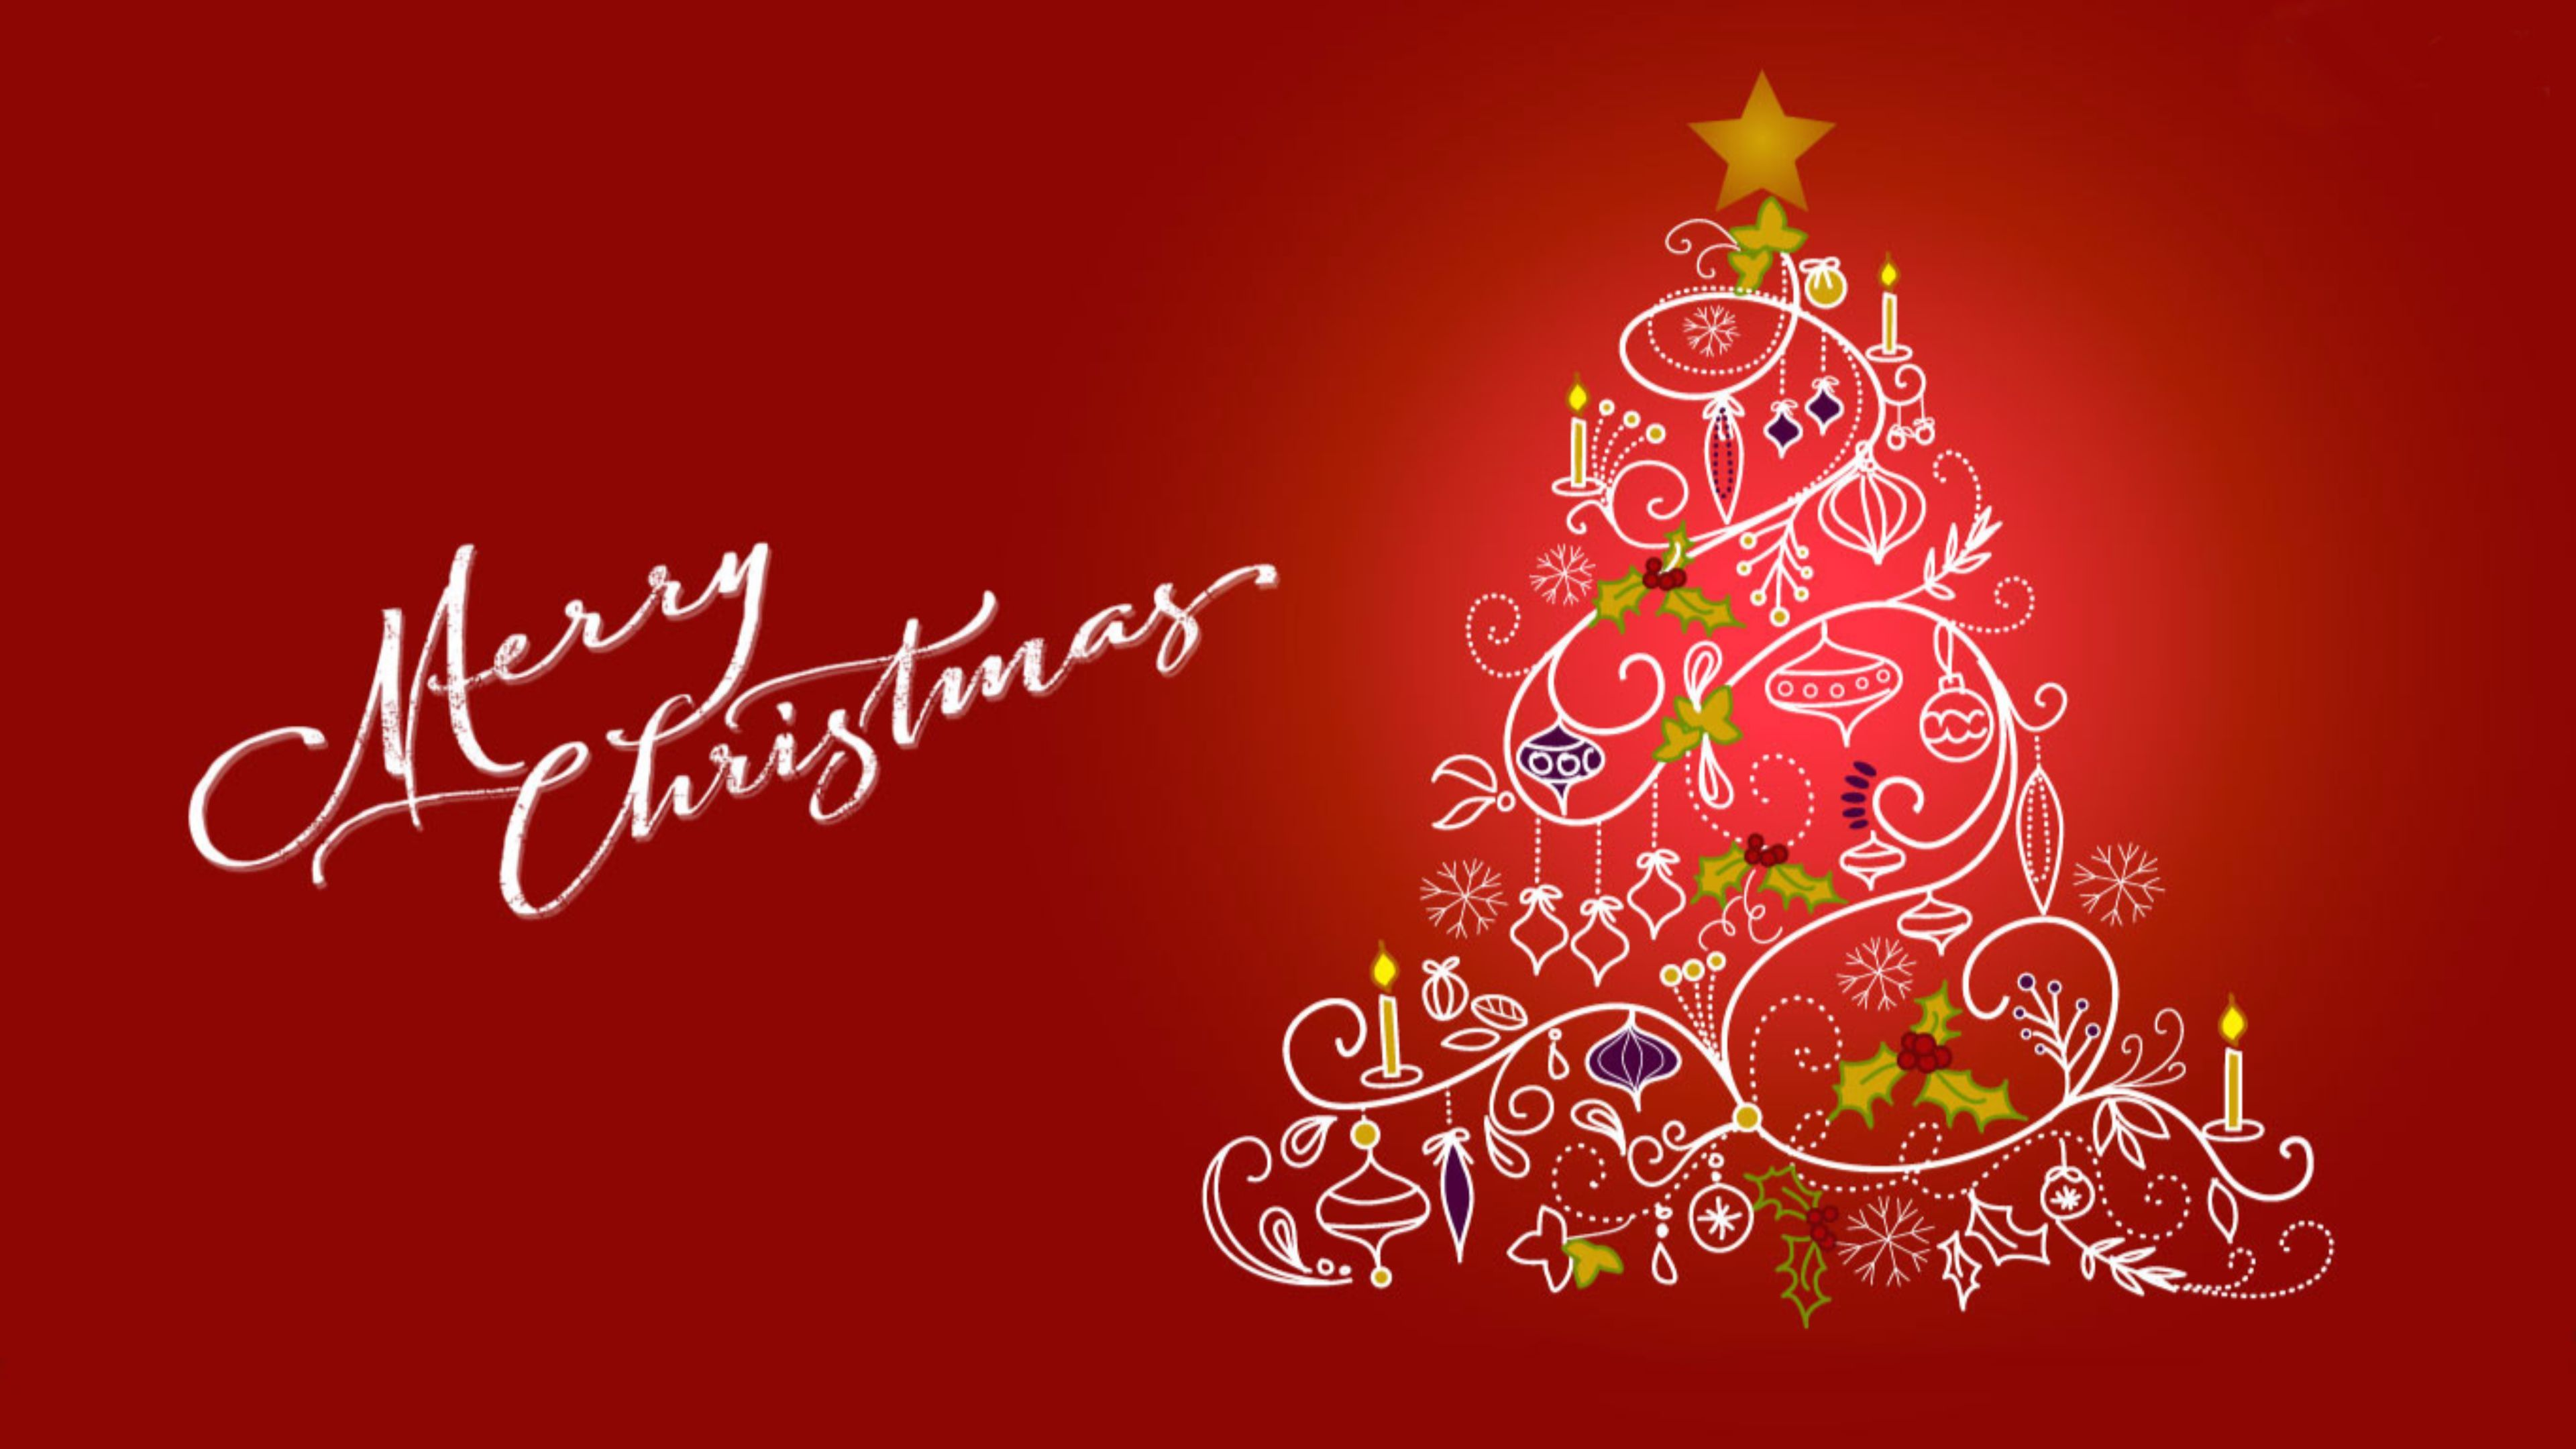 Christmas Tree Image HD Wallpaper